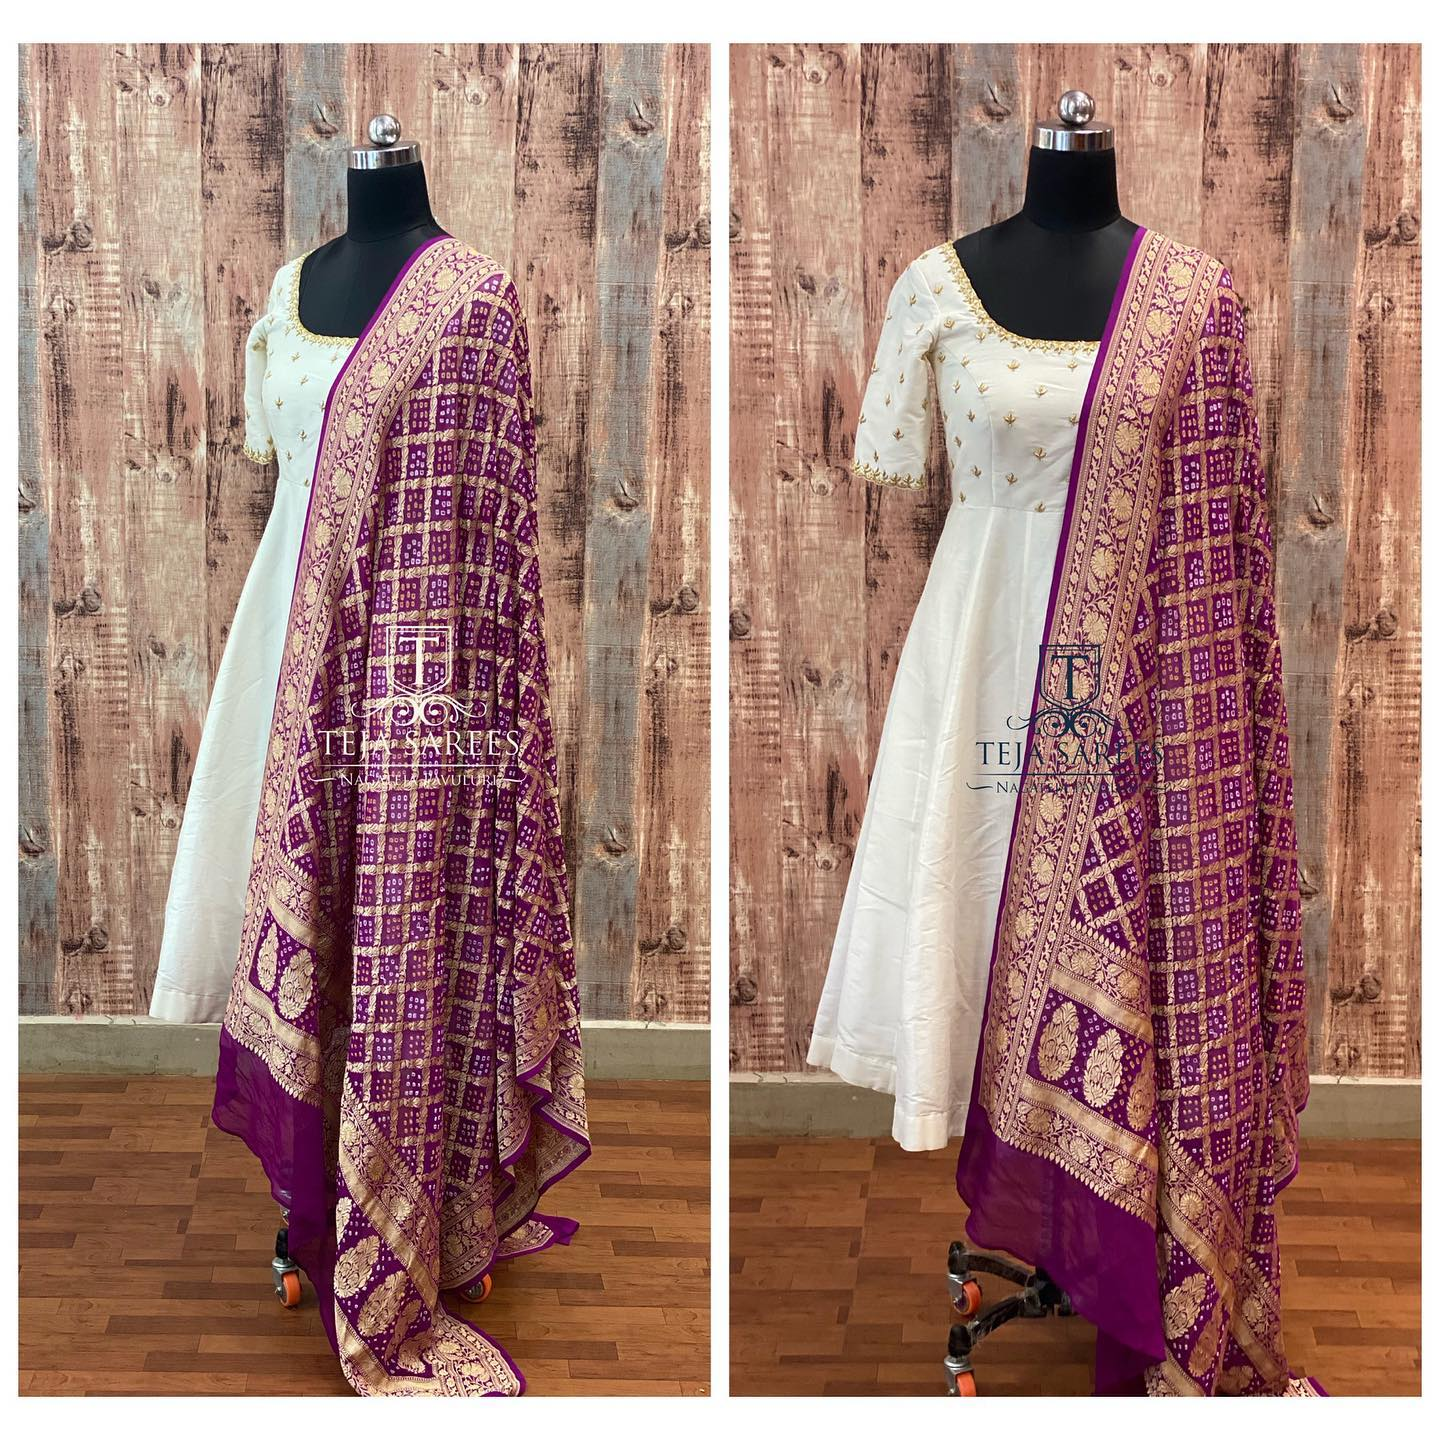 TS-DS- 719. Available. Beautiful pearl white ankle length long frock with purple benarasi dupatta.  For orders/queries Call/ what's app on 8341382382 or Mail  tejasarees@yahoo.com. 2021-09-17